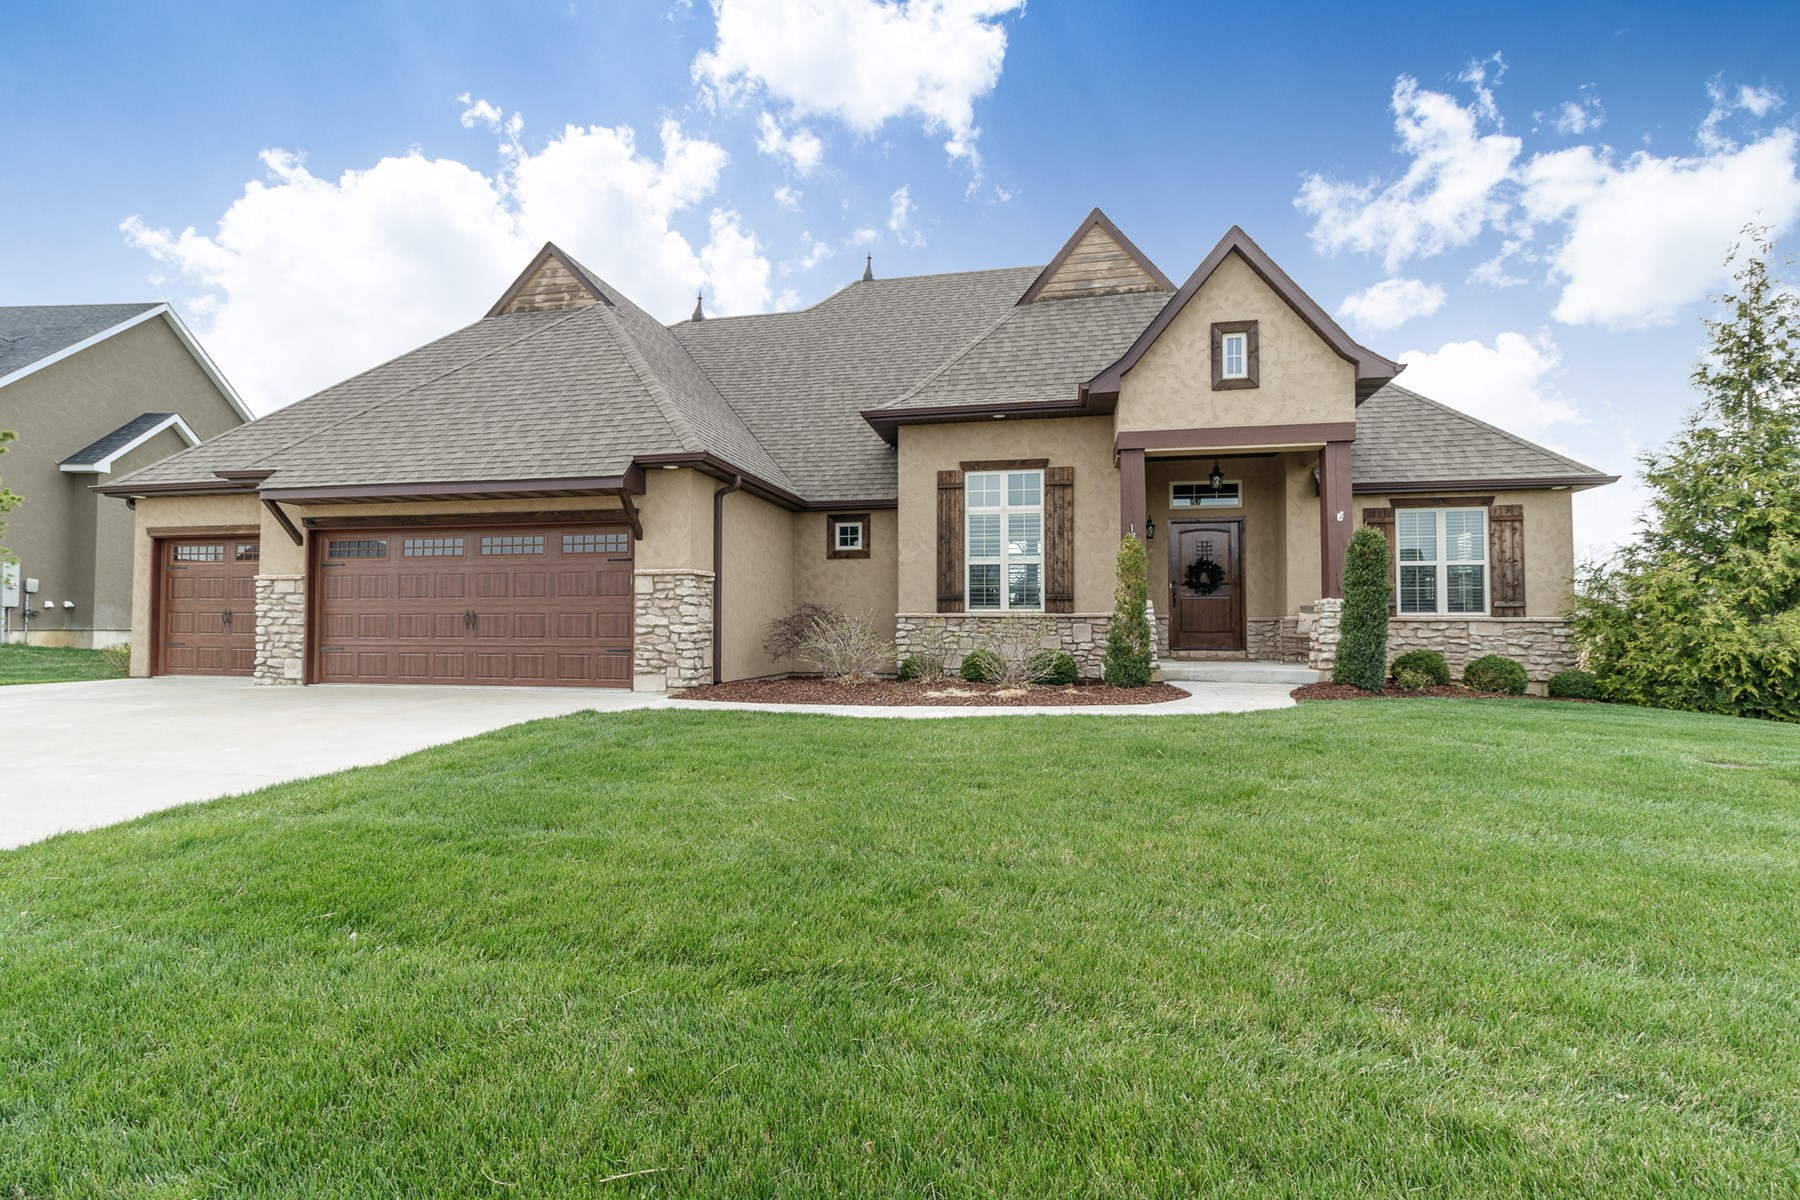 5 BR, 3.5 BA Home in Old Hawthorne's Golf Community Columbia